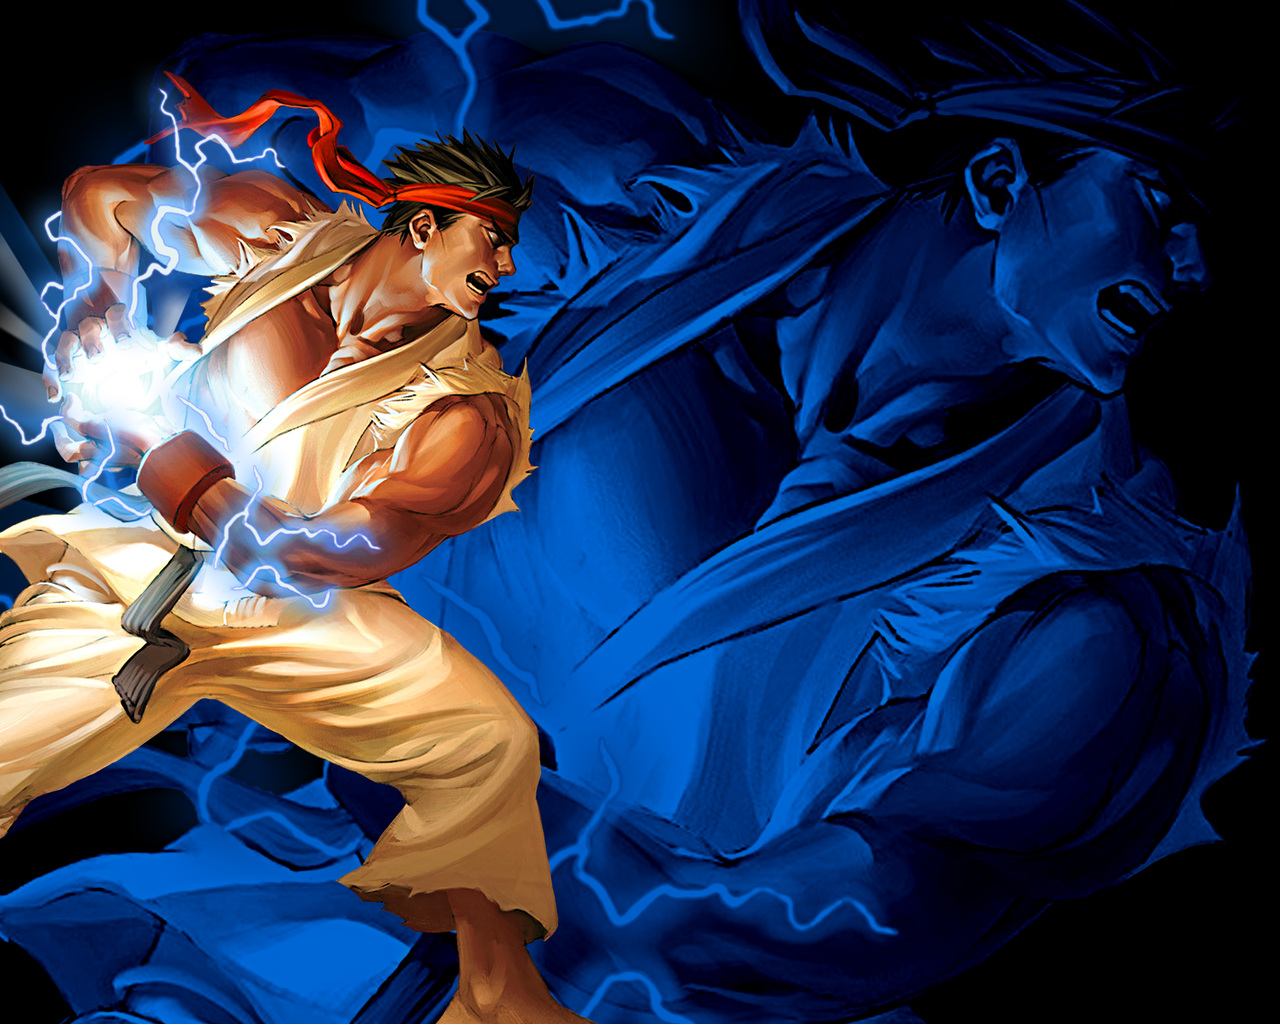 ryu-hadouken-street-fighter-2-55.jpg